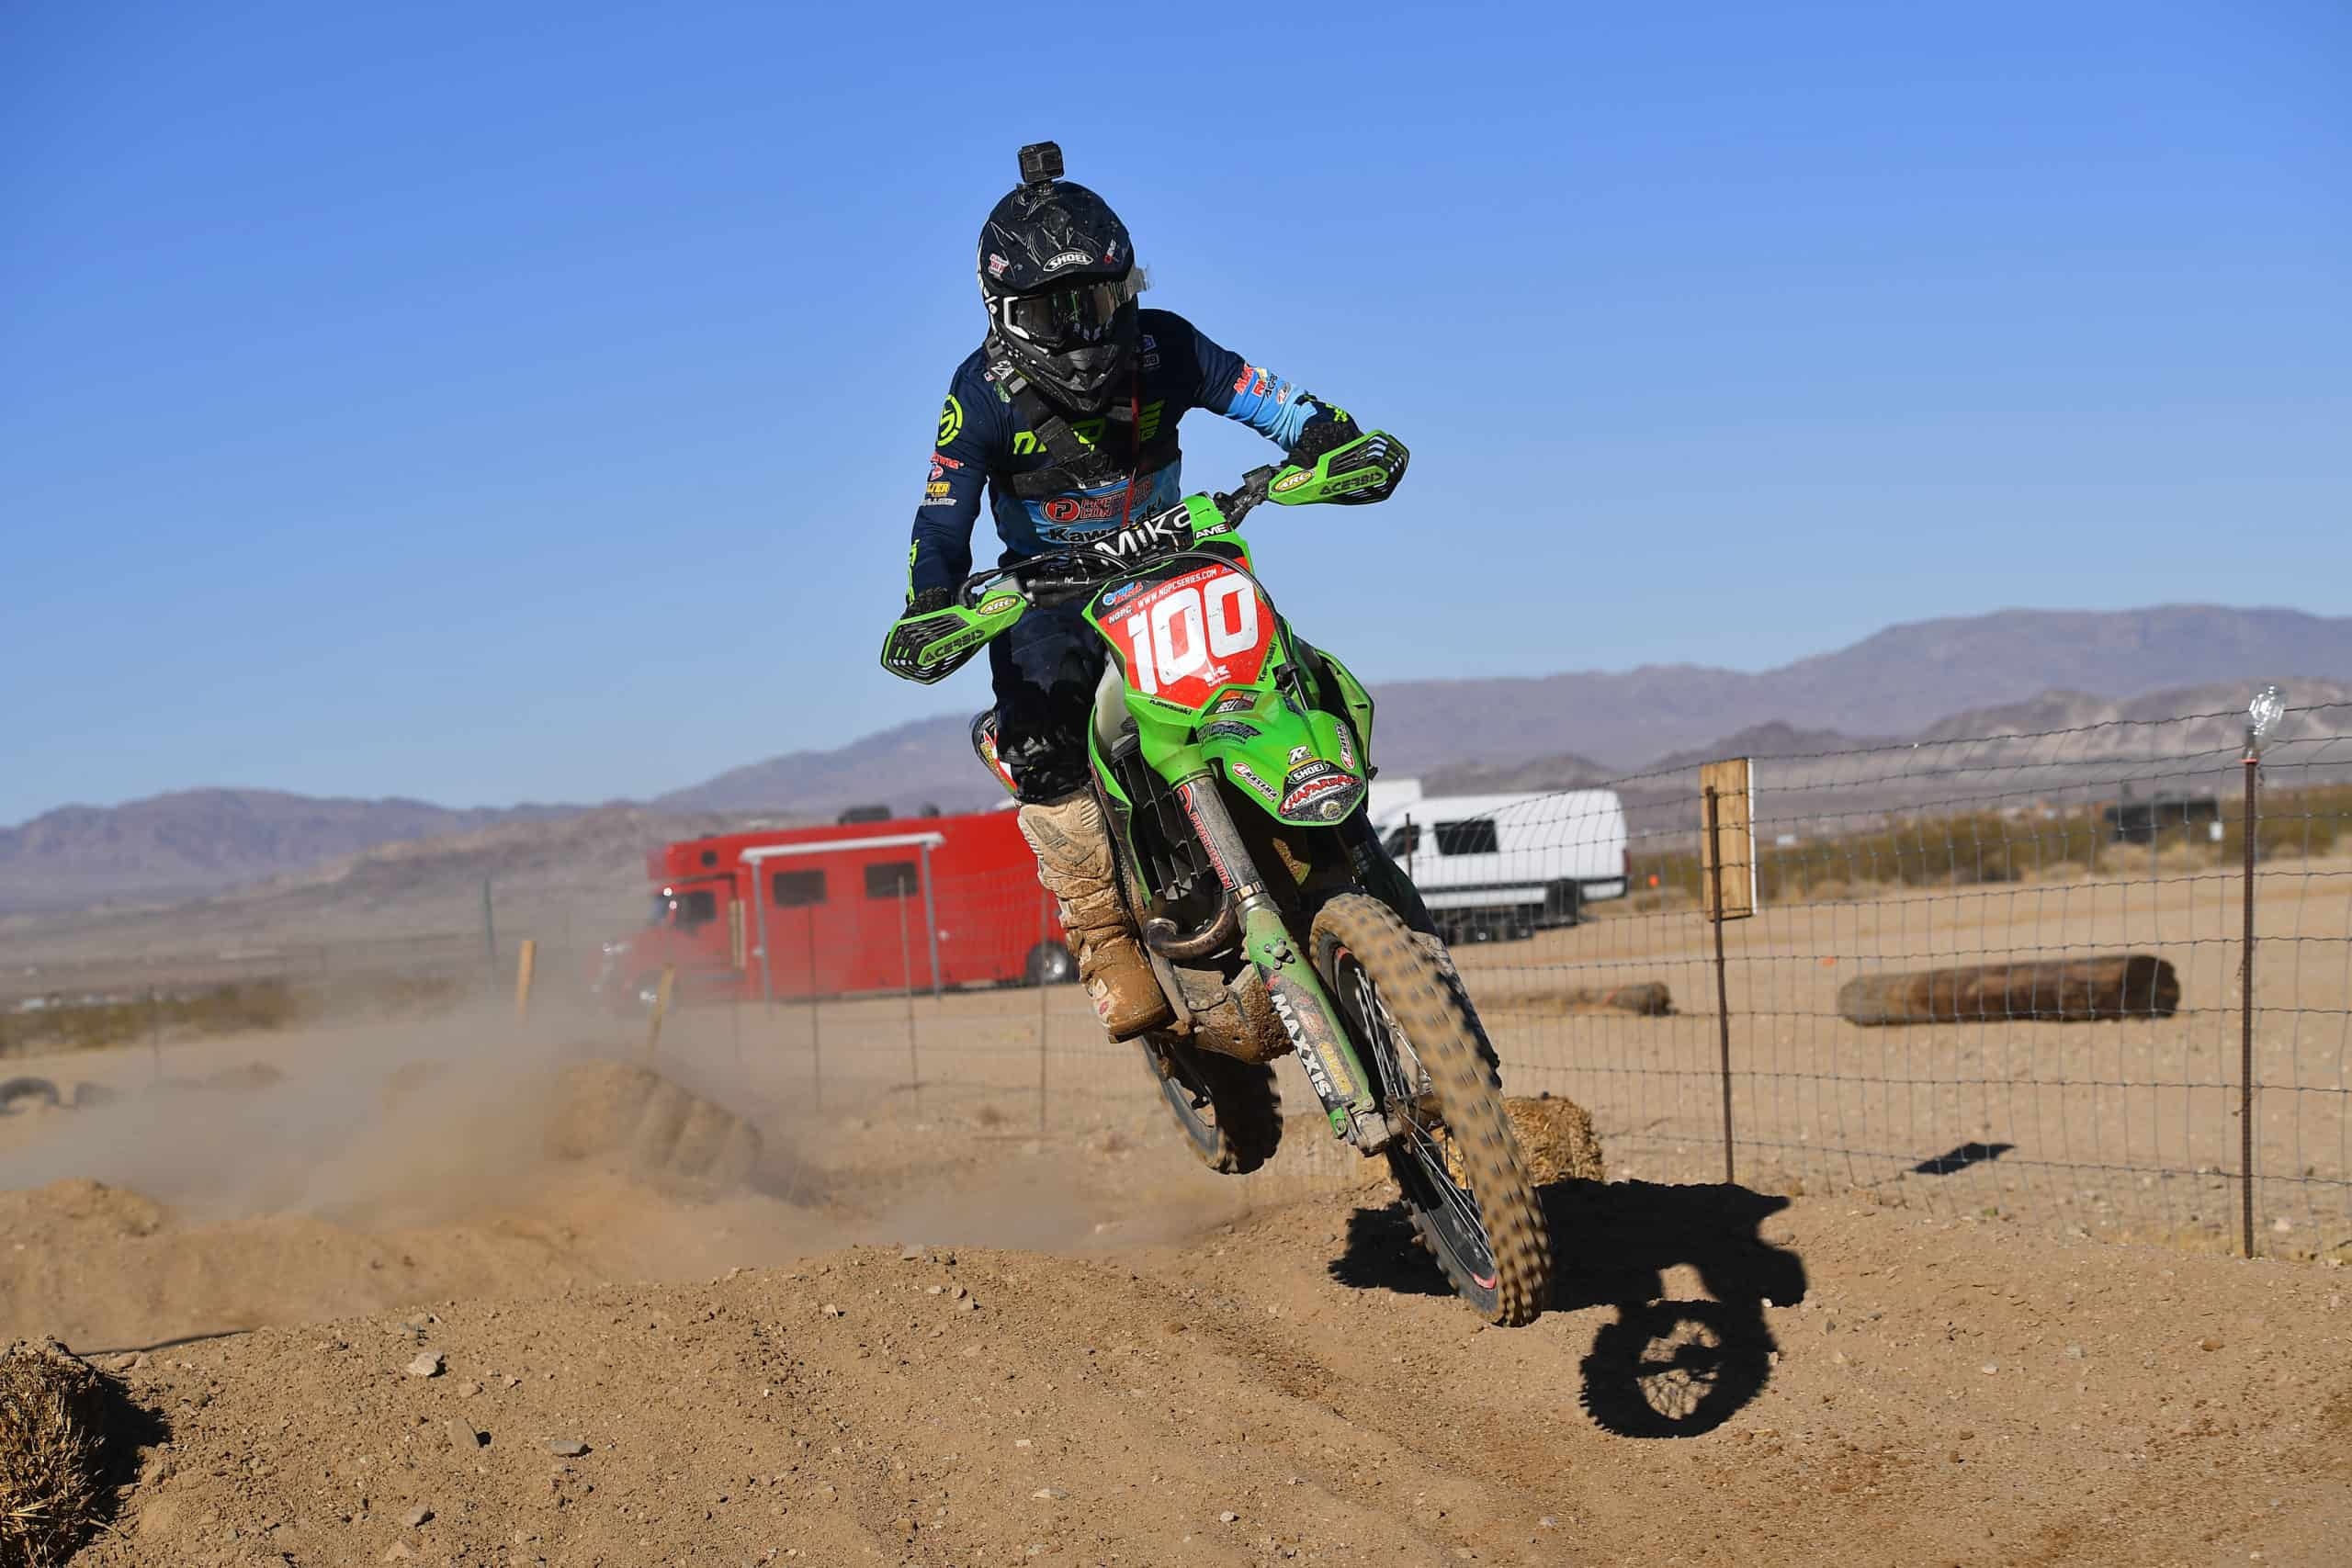 zach bell riding his kx450 at the 2020 29 palms 2 ngpc